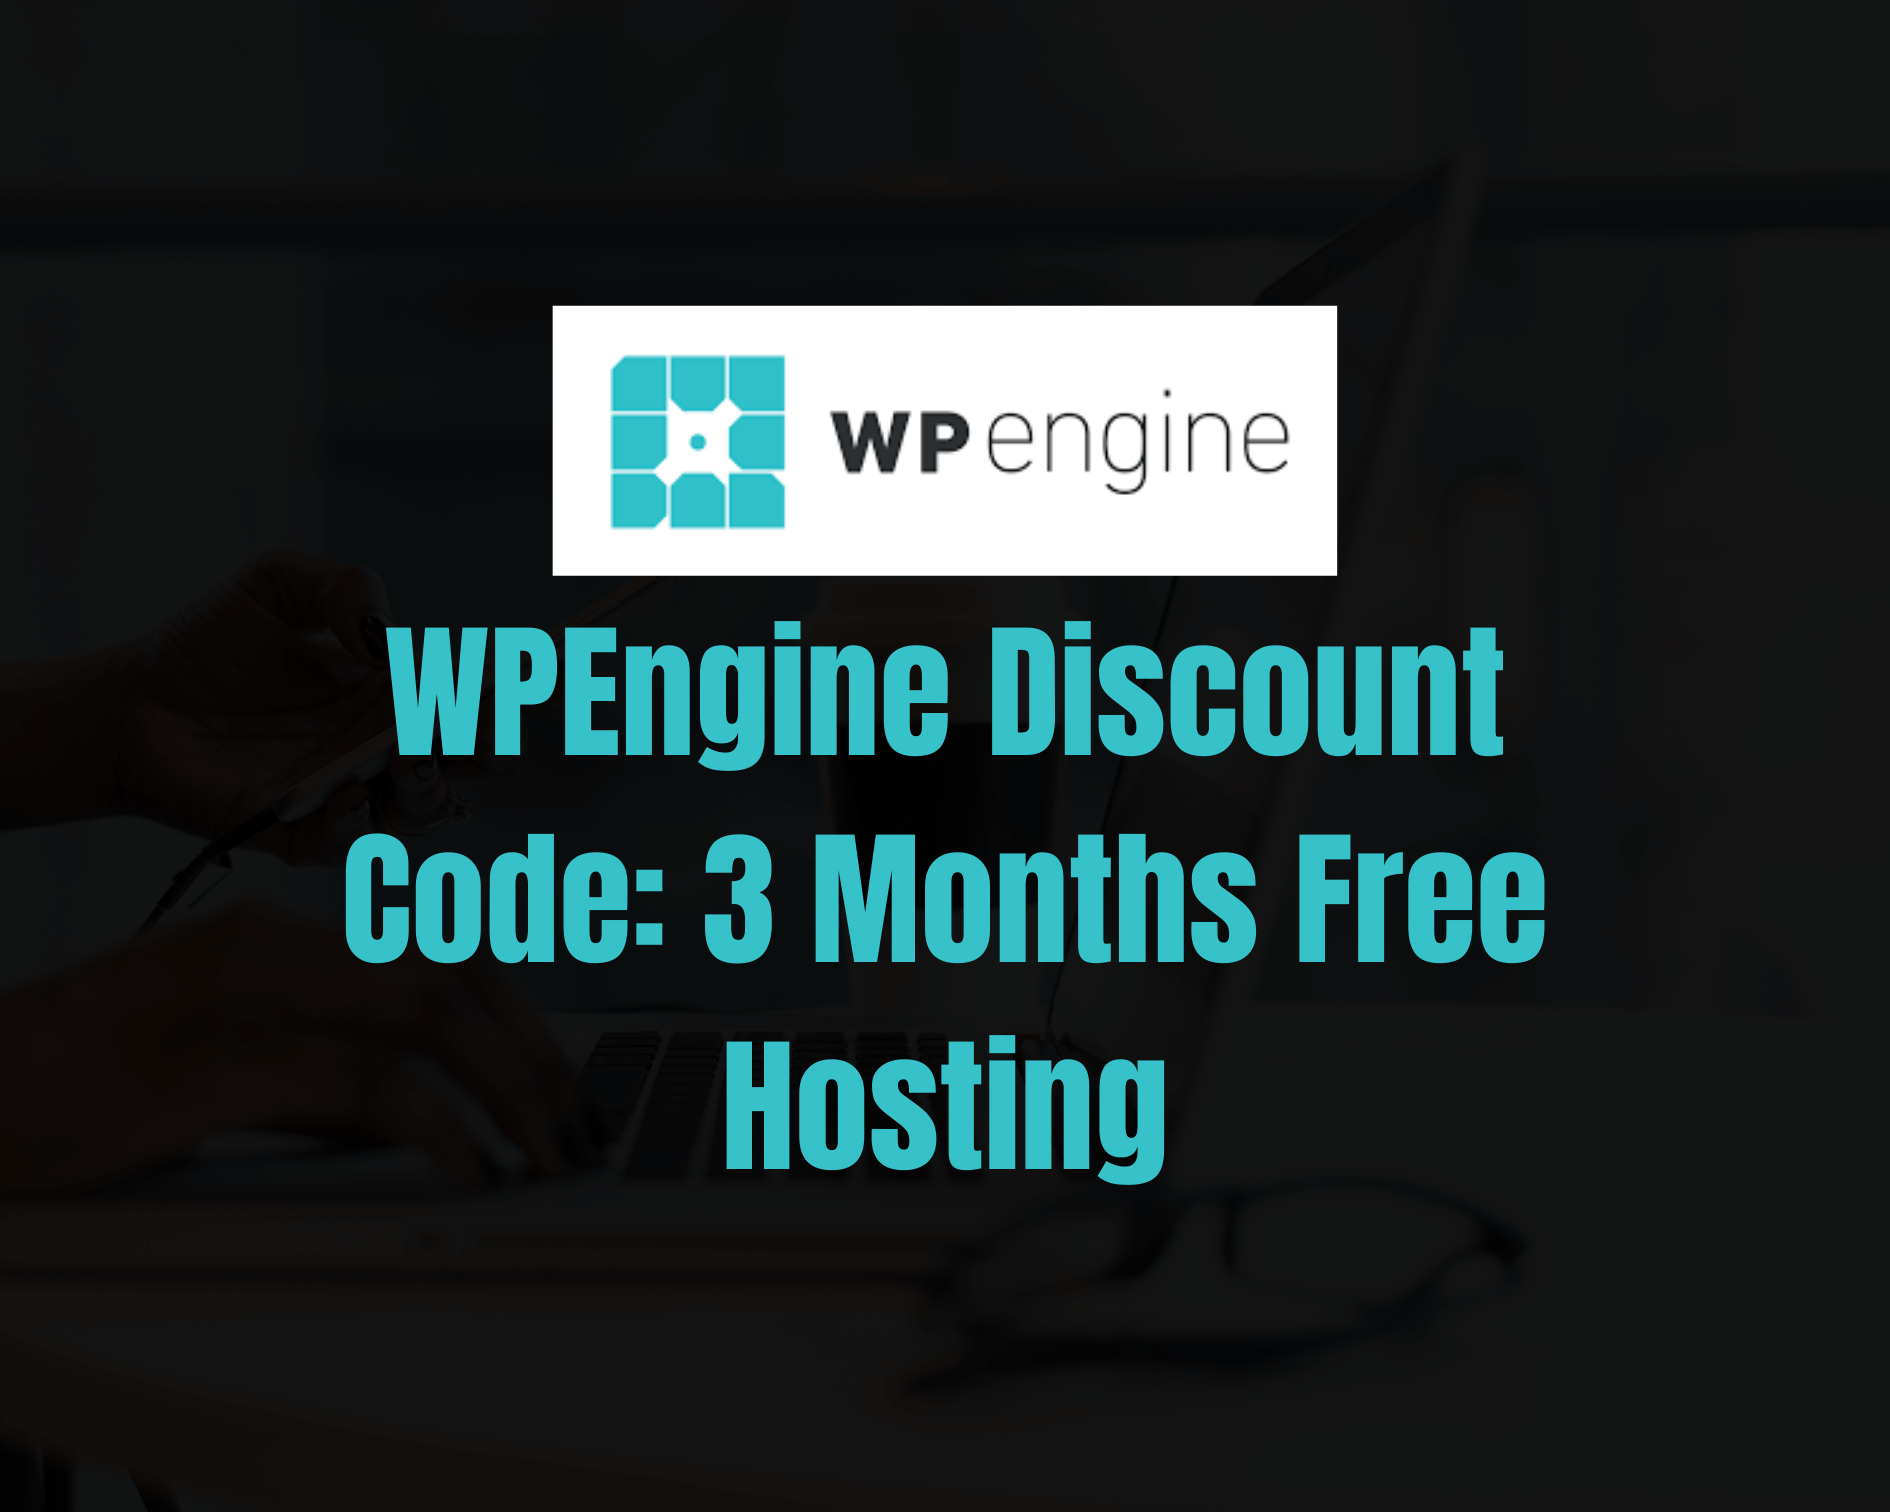 WPEngine Discount Code [2021]: Get 3 Months Free Hosting